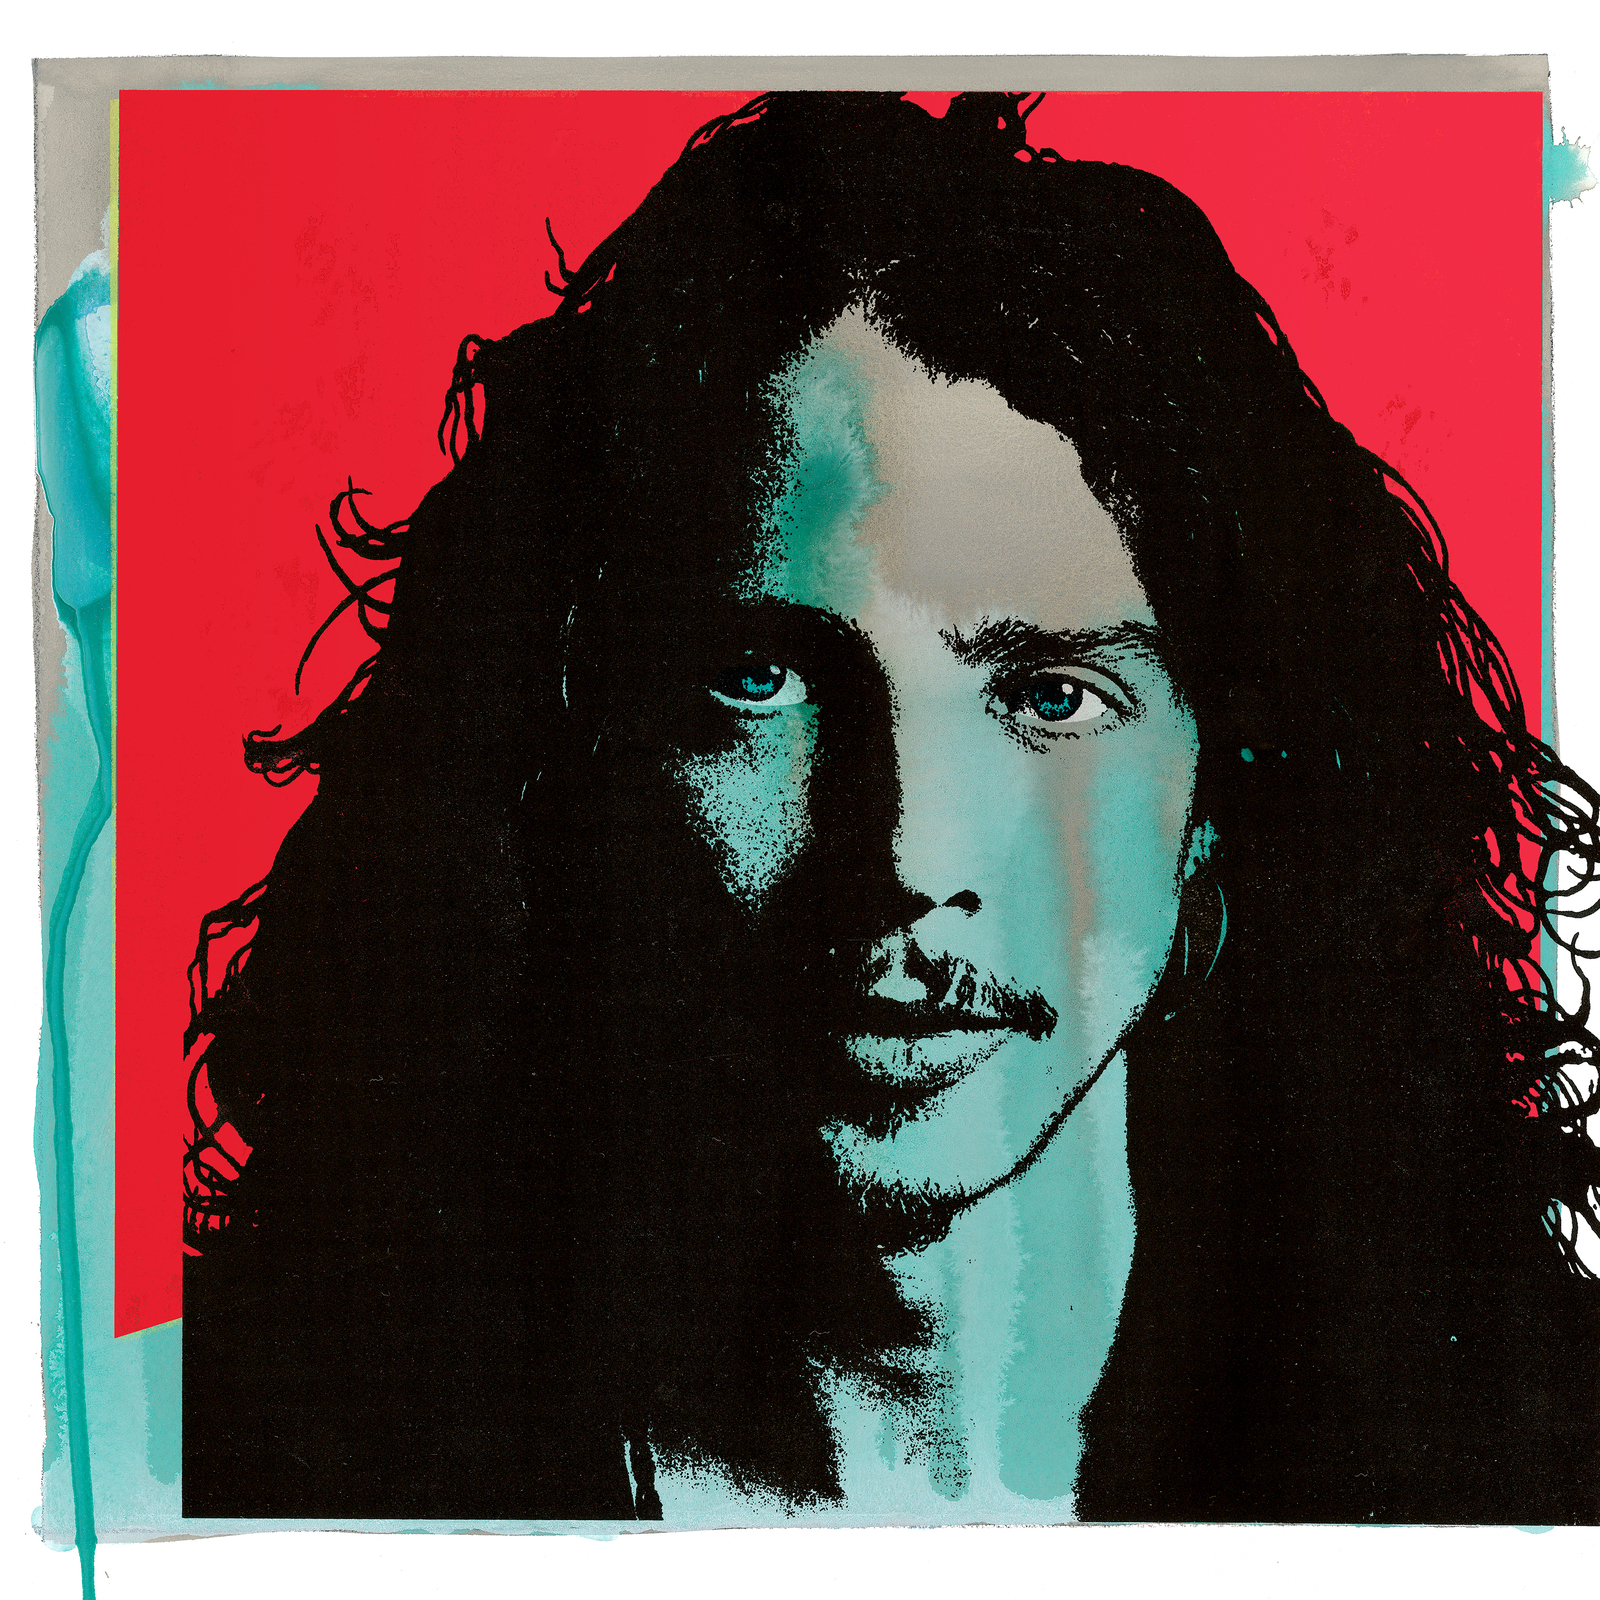 Chris Cornell by Chris Cornell image